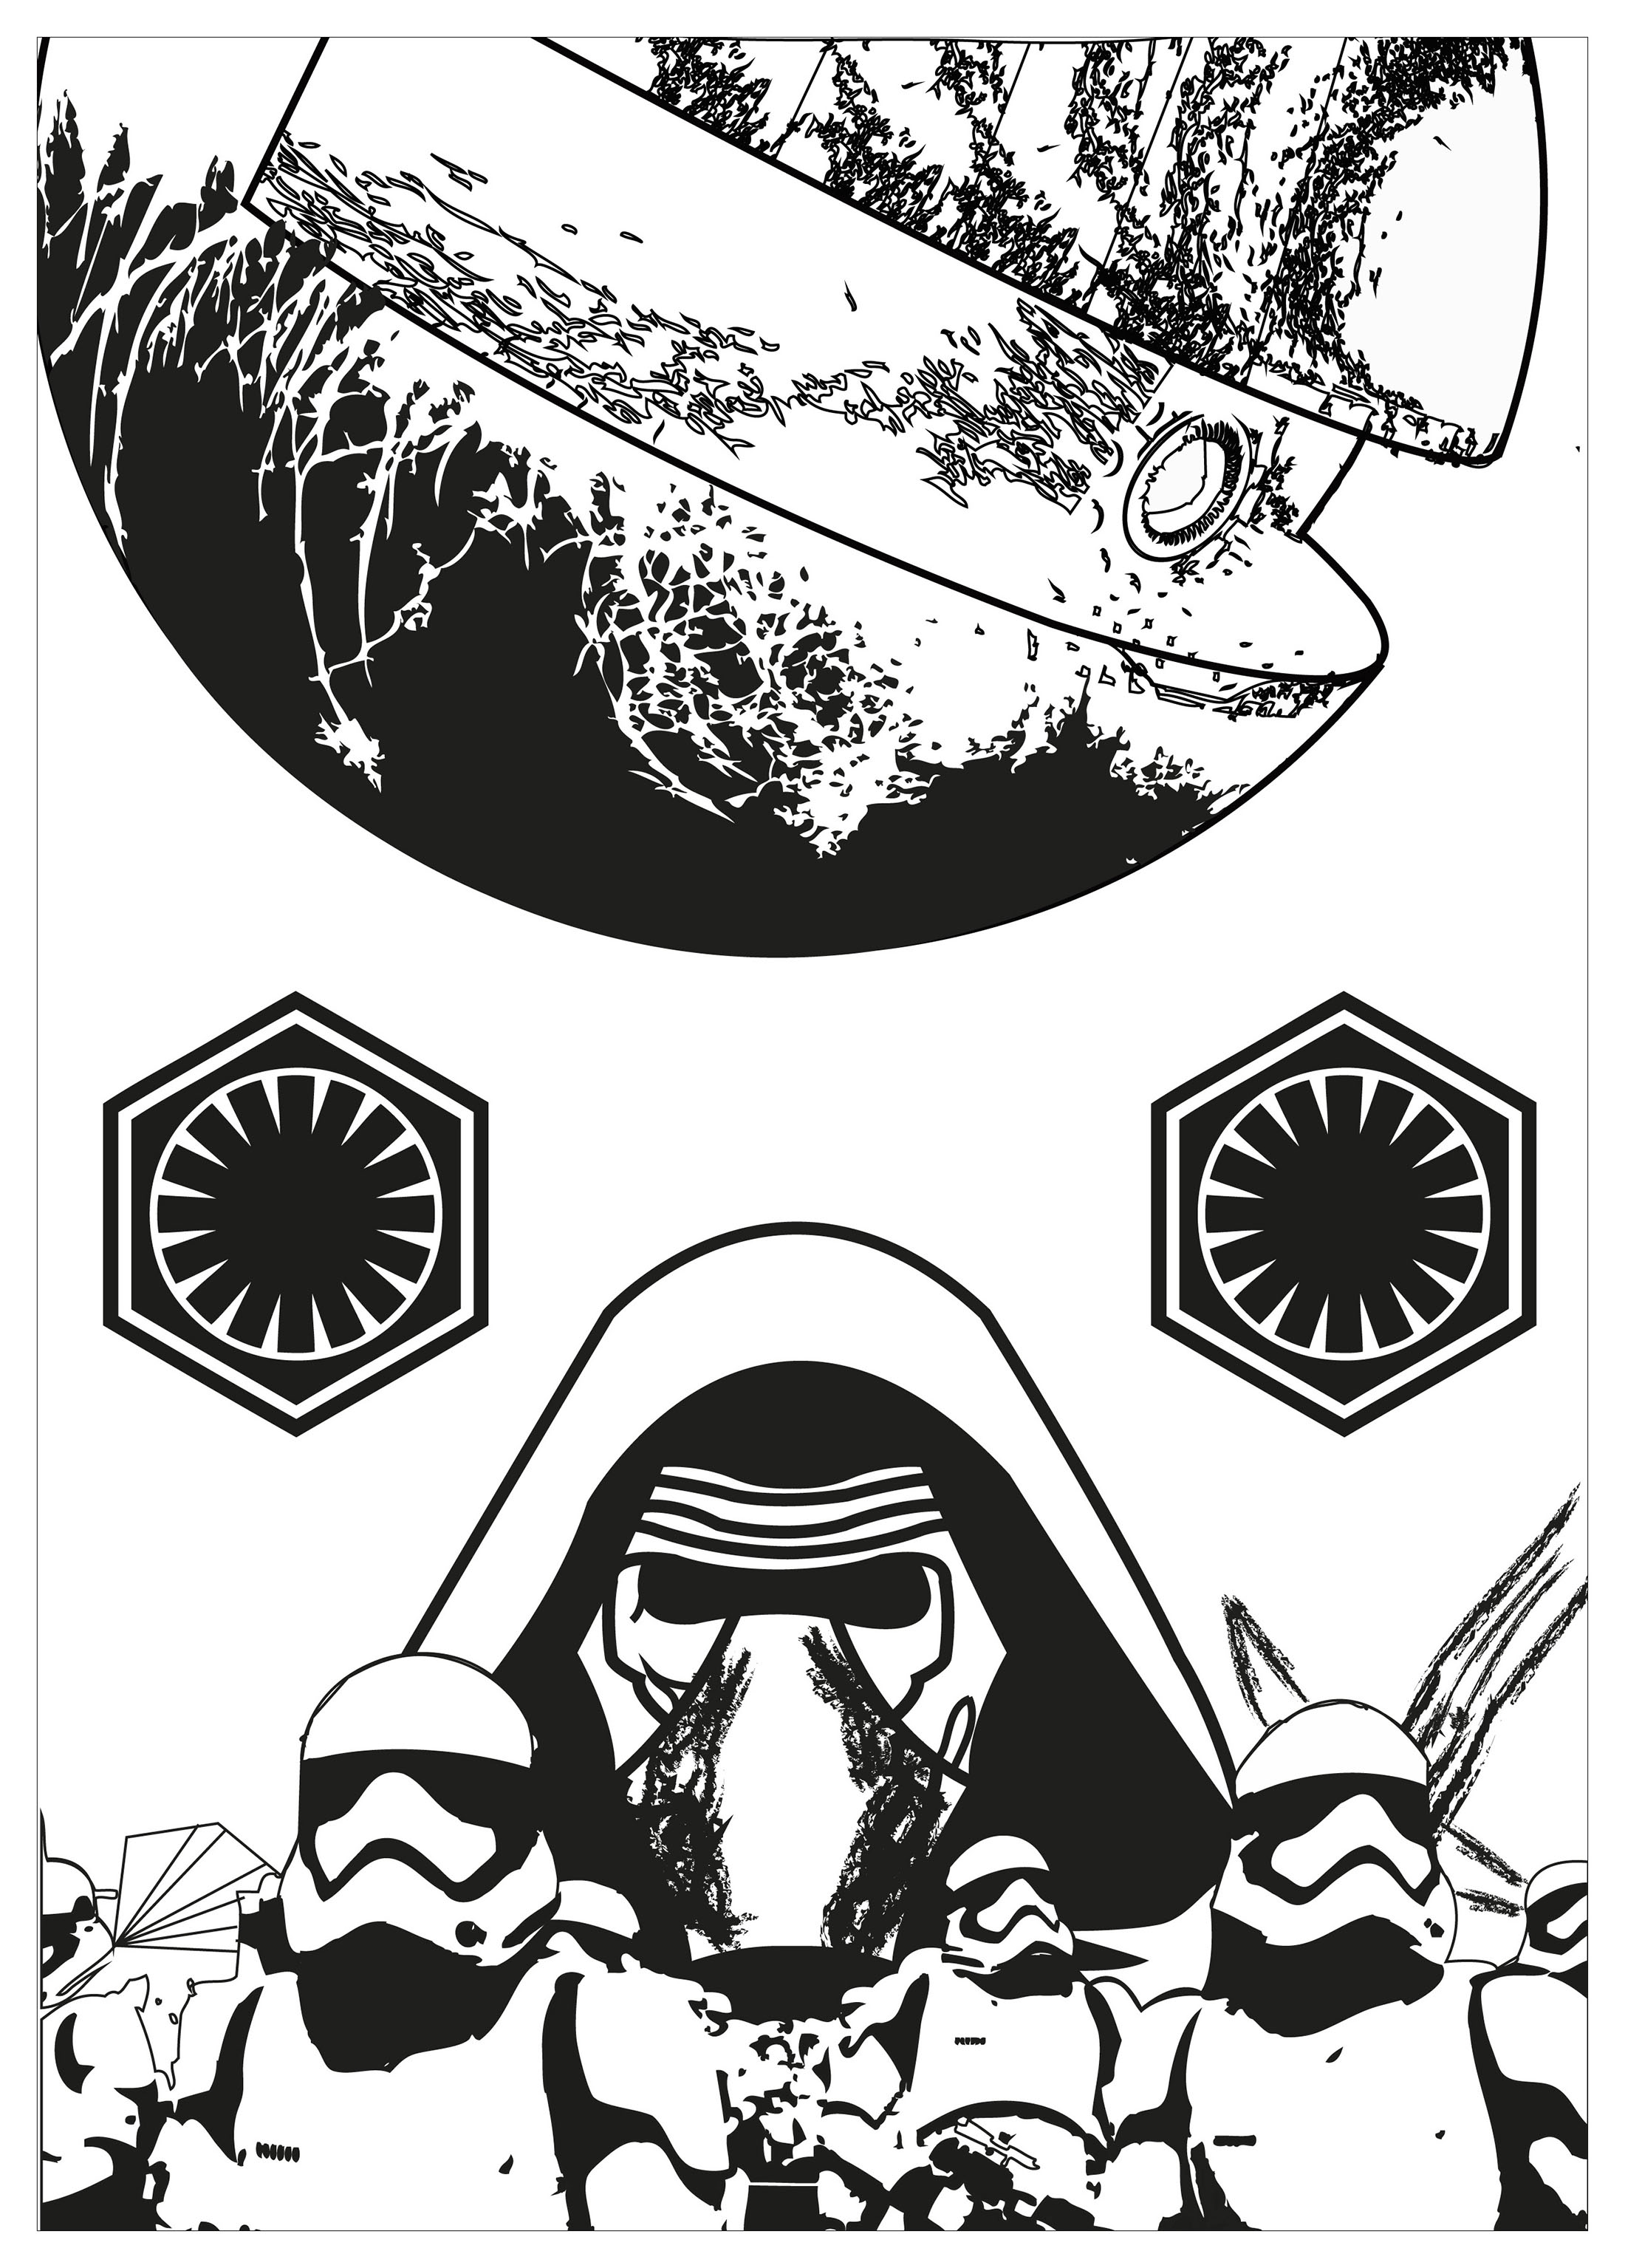 Star wars fan art coloring page, with Kylo Ren, Stormtroopers and the Death star